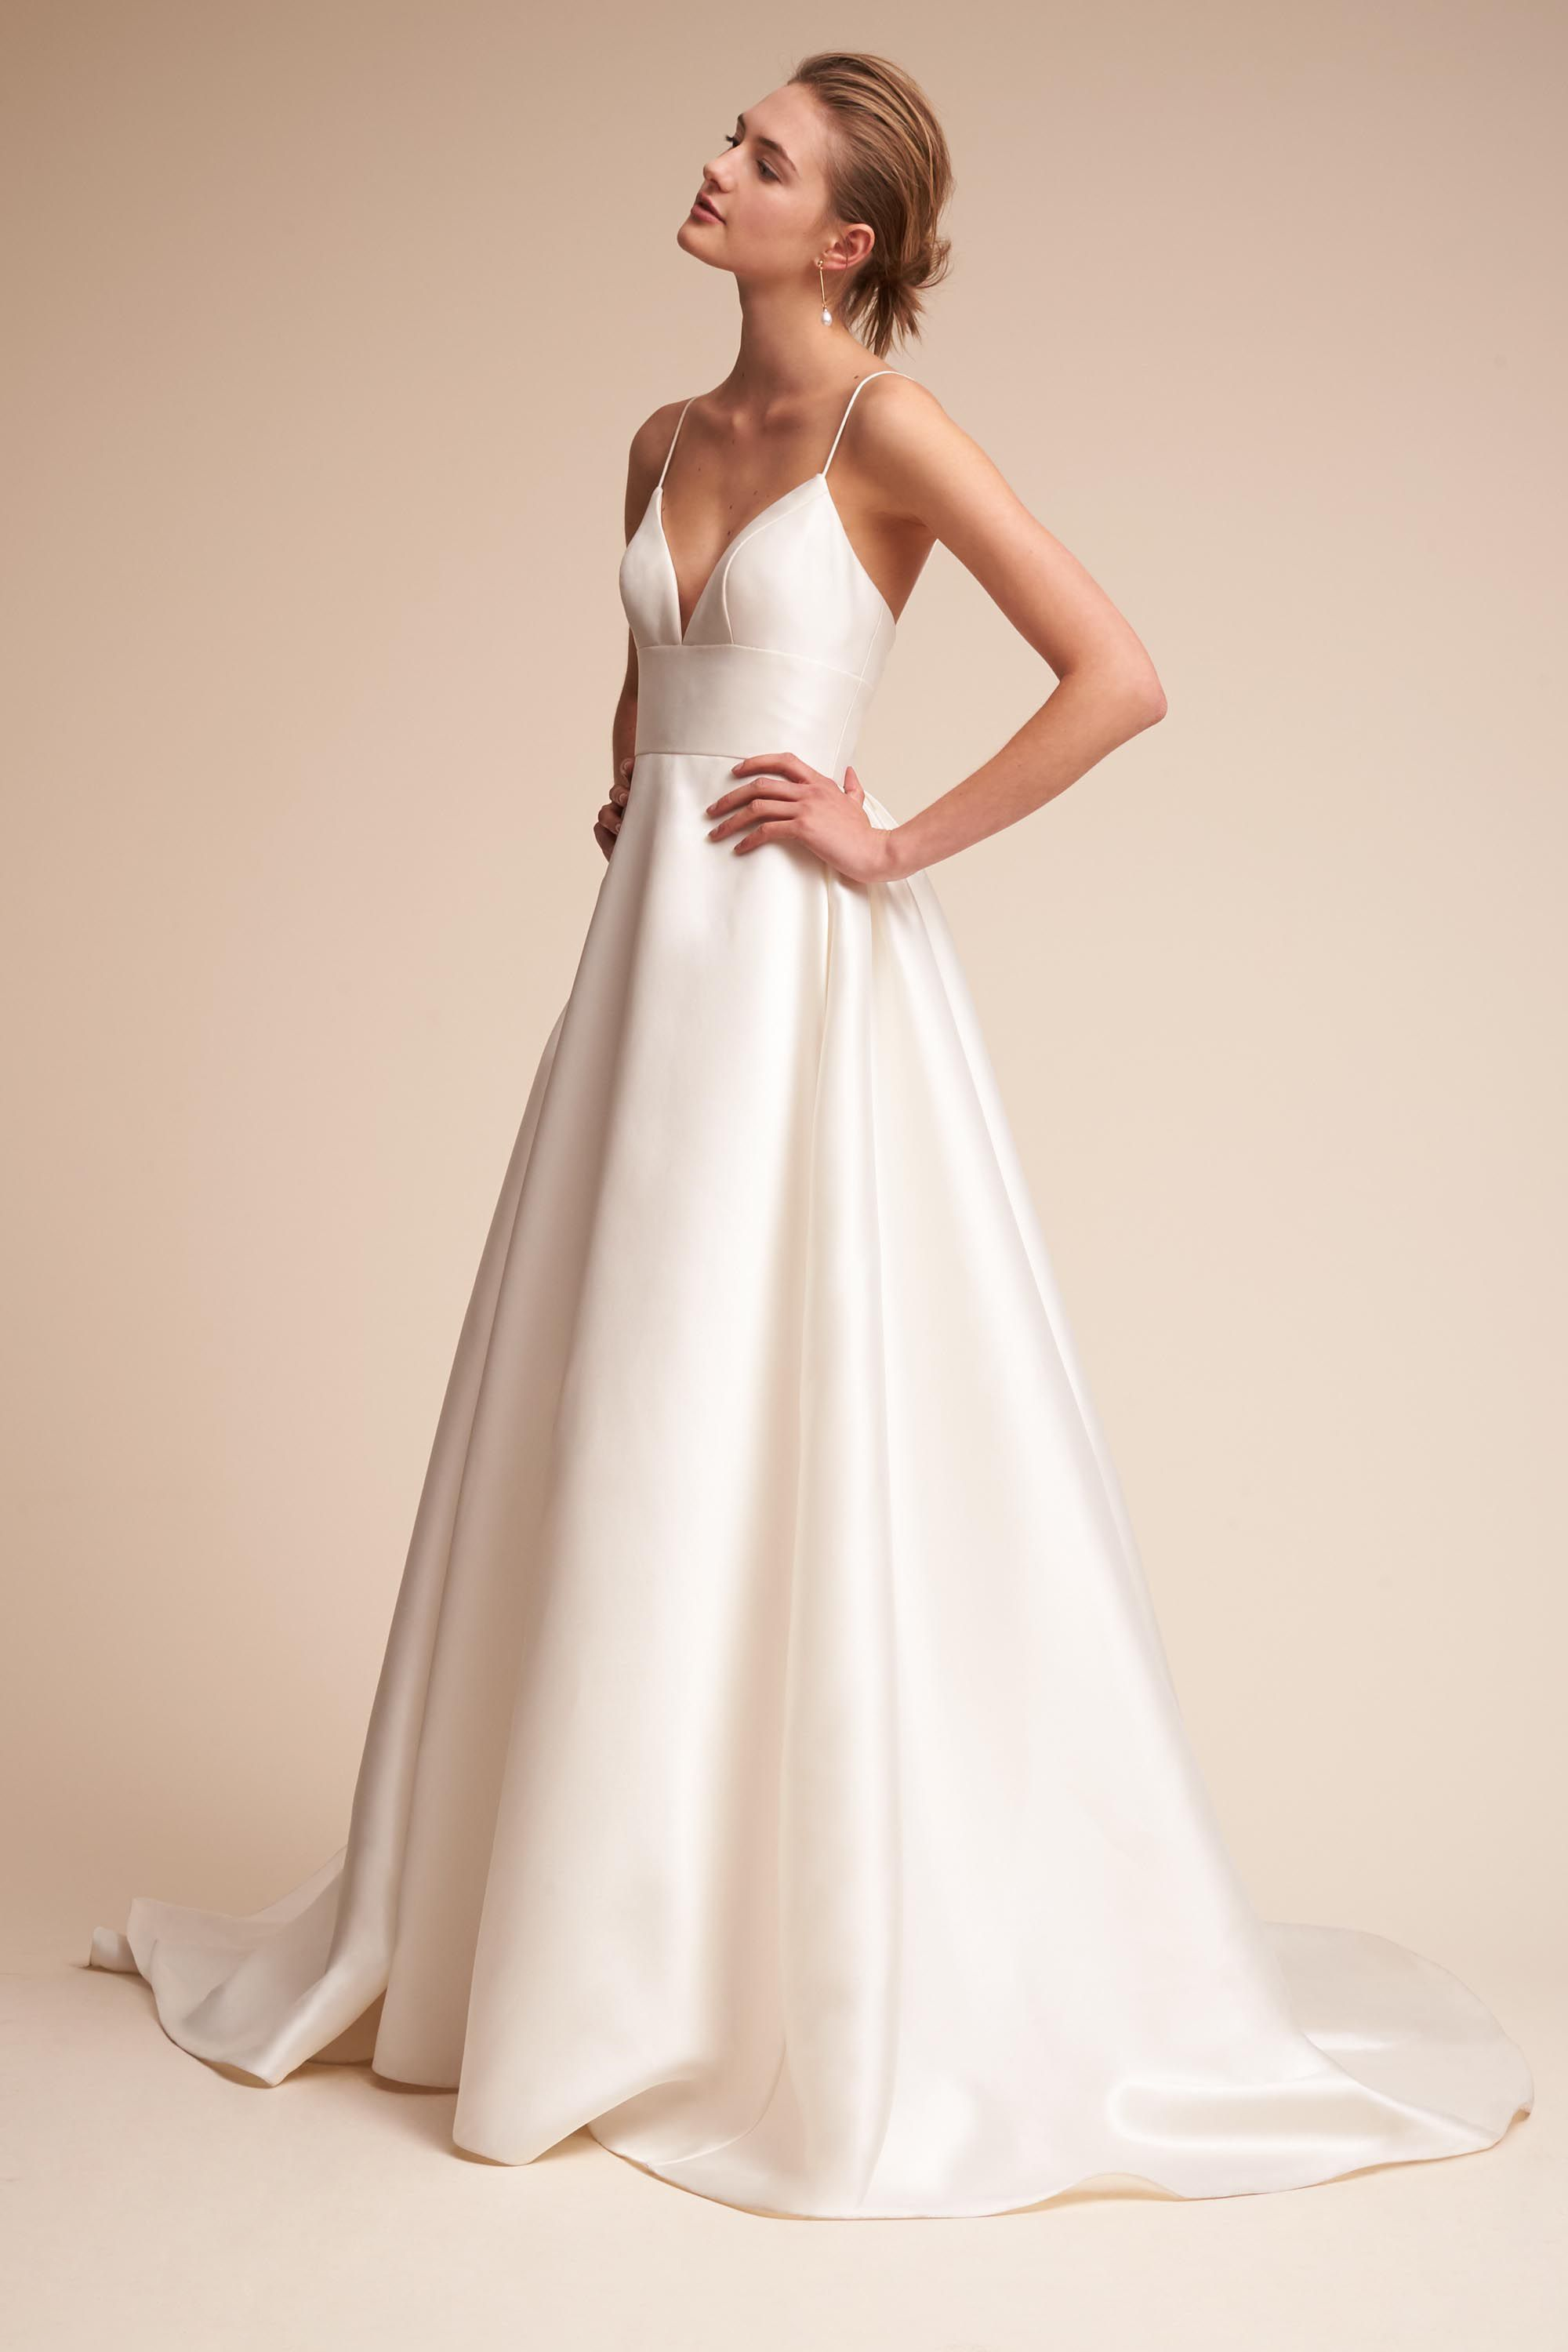 How much to alter wedding dress  Opaline Ballgown from BHLDN cheapweddingdresses  Wedding Dress